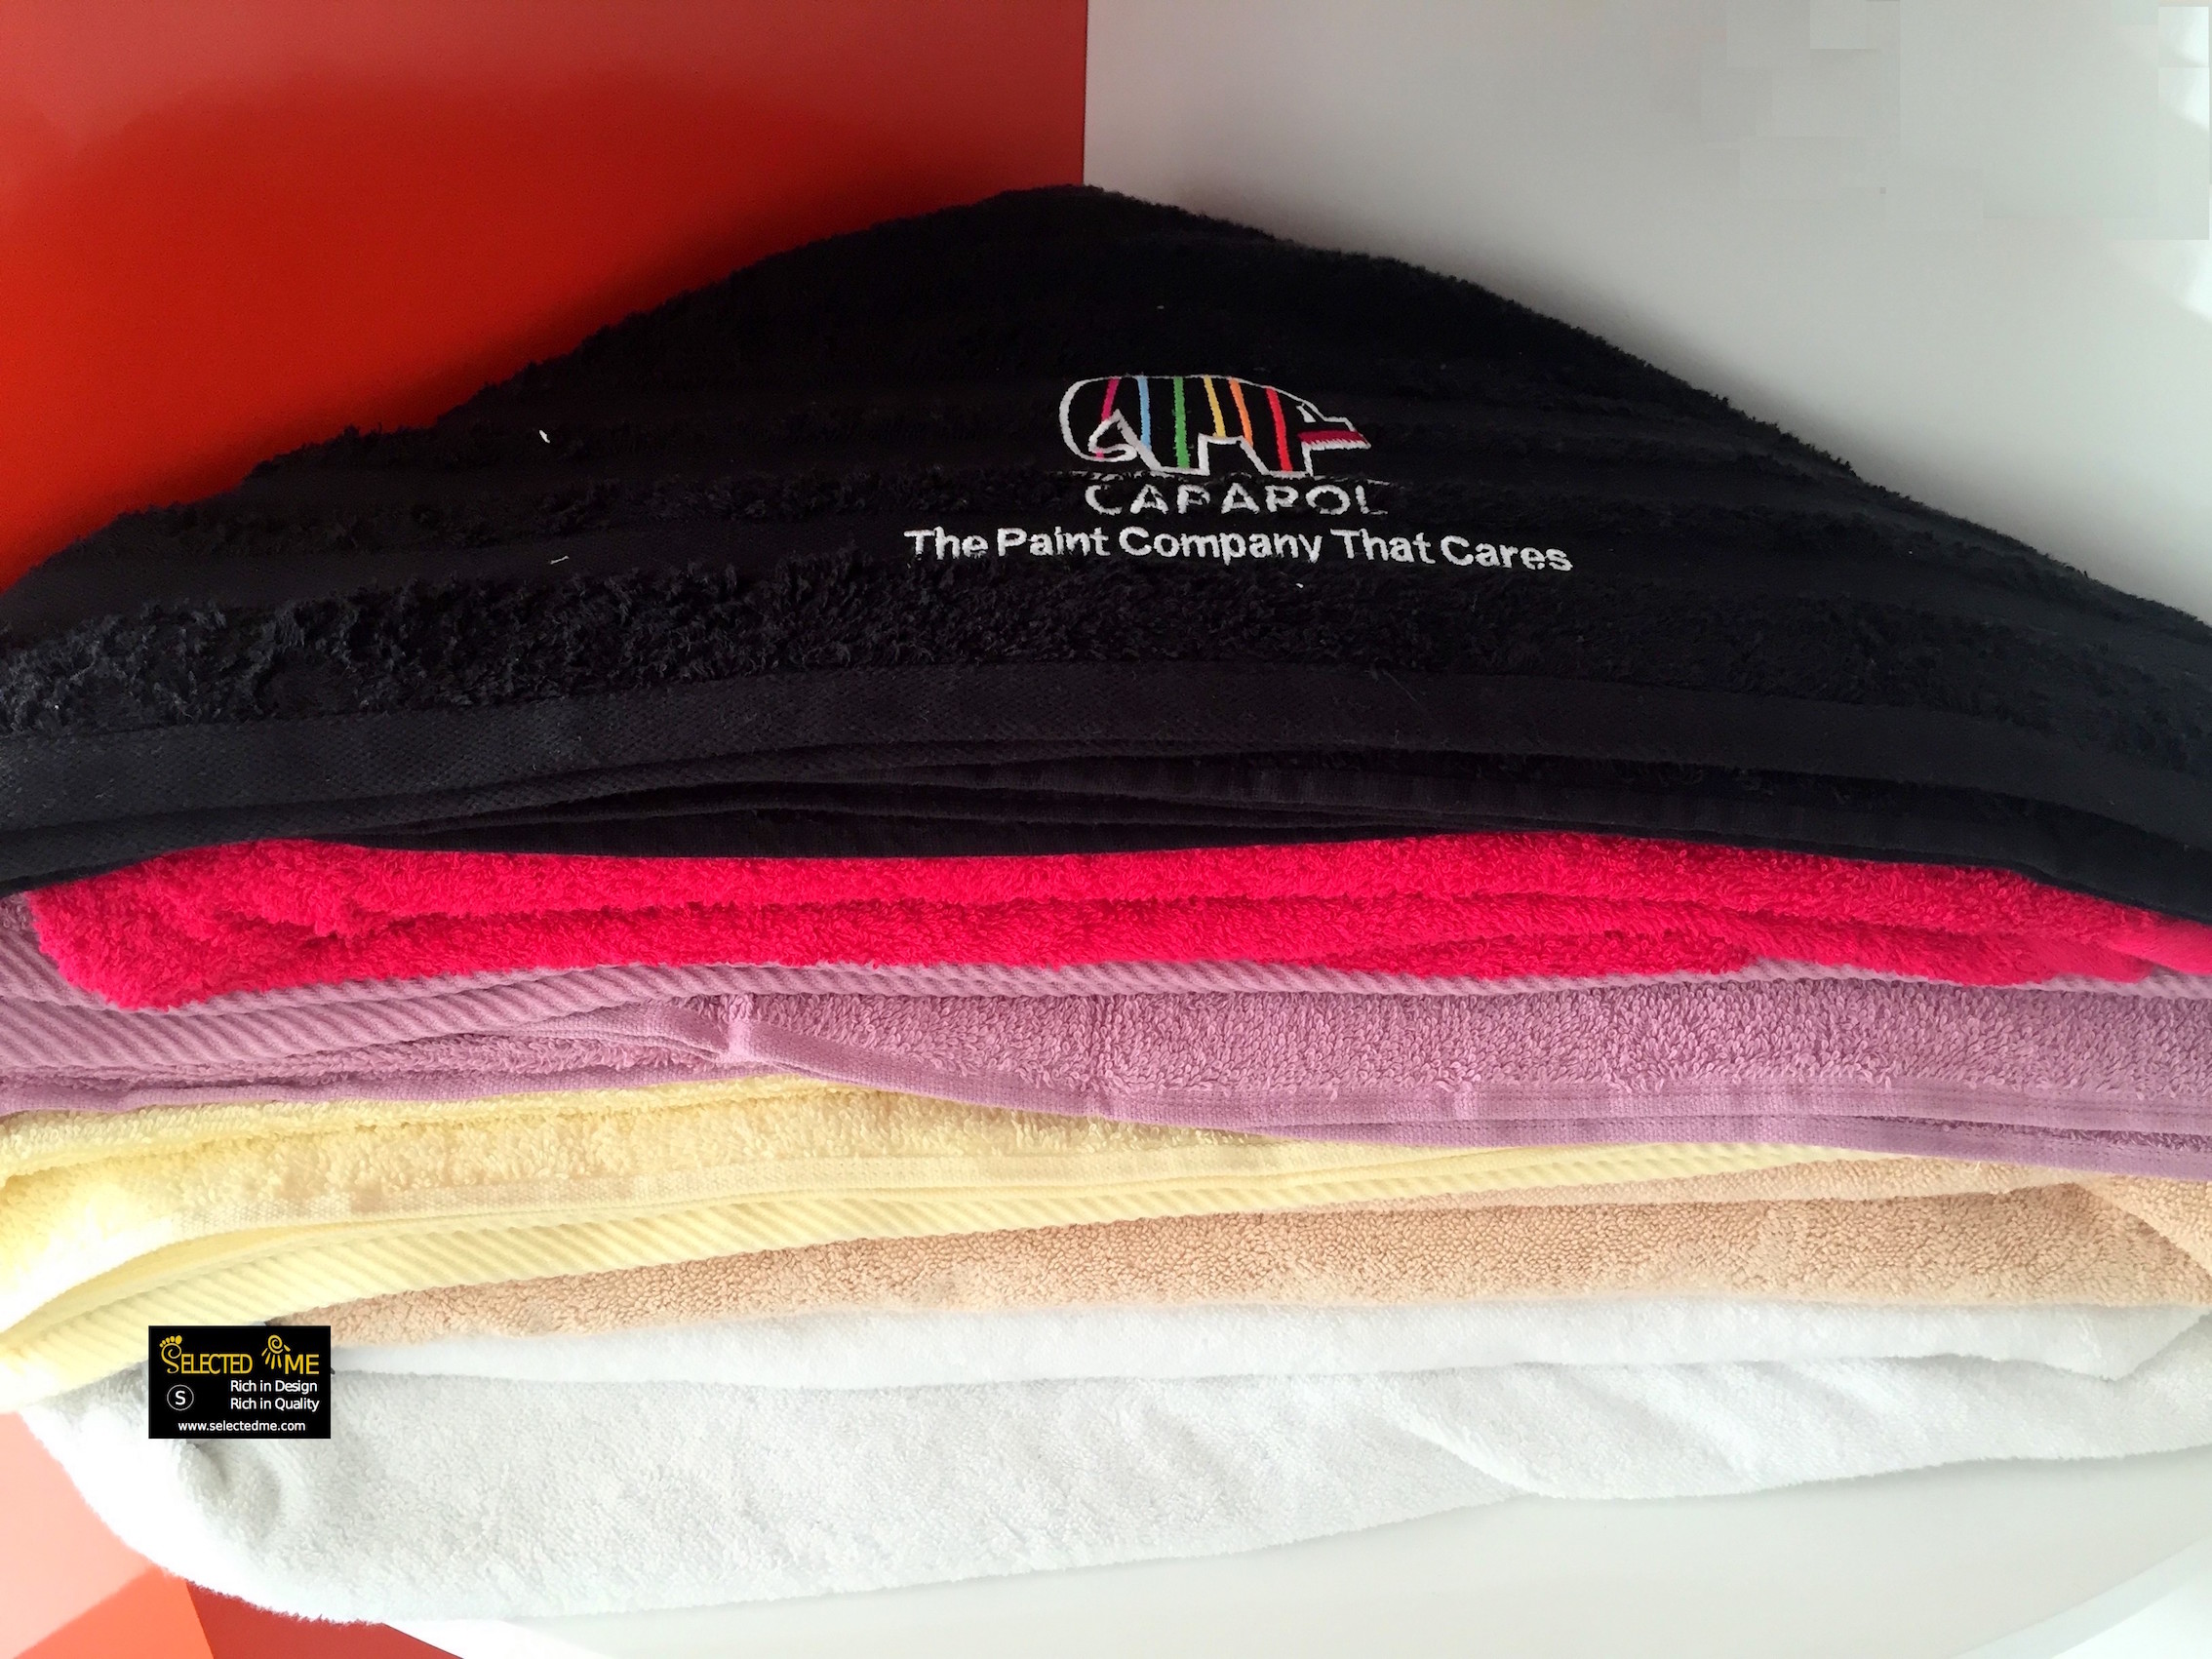 Gym Fitness Towel Wholesale - Buy Workout Towels all colours